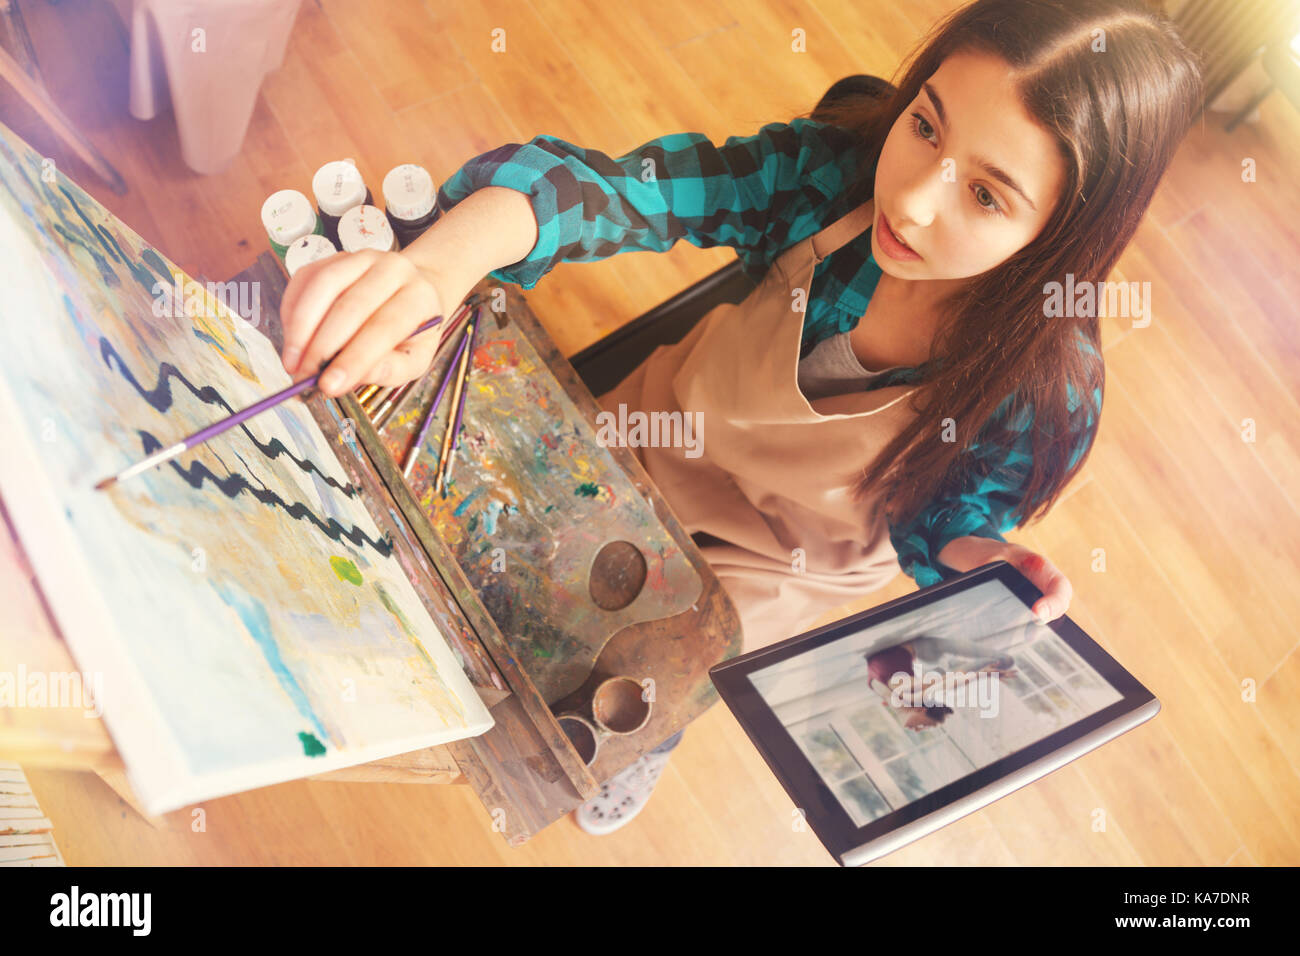 Charming girl painting abstract masterpiece on art canvas - Stock Image